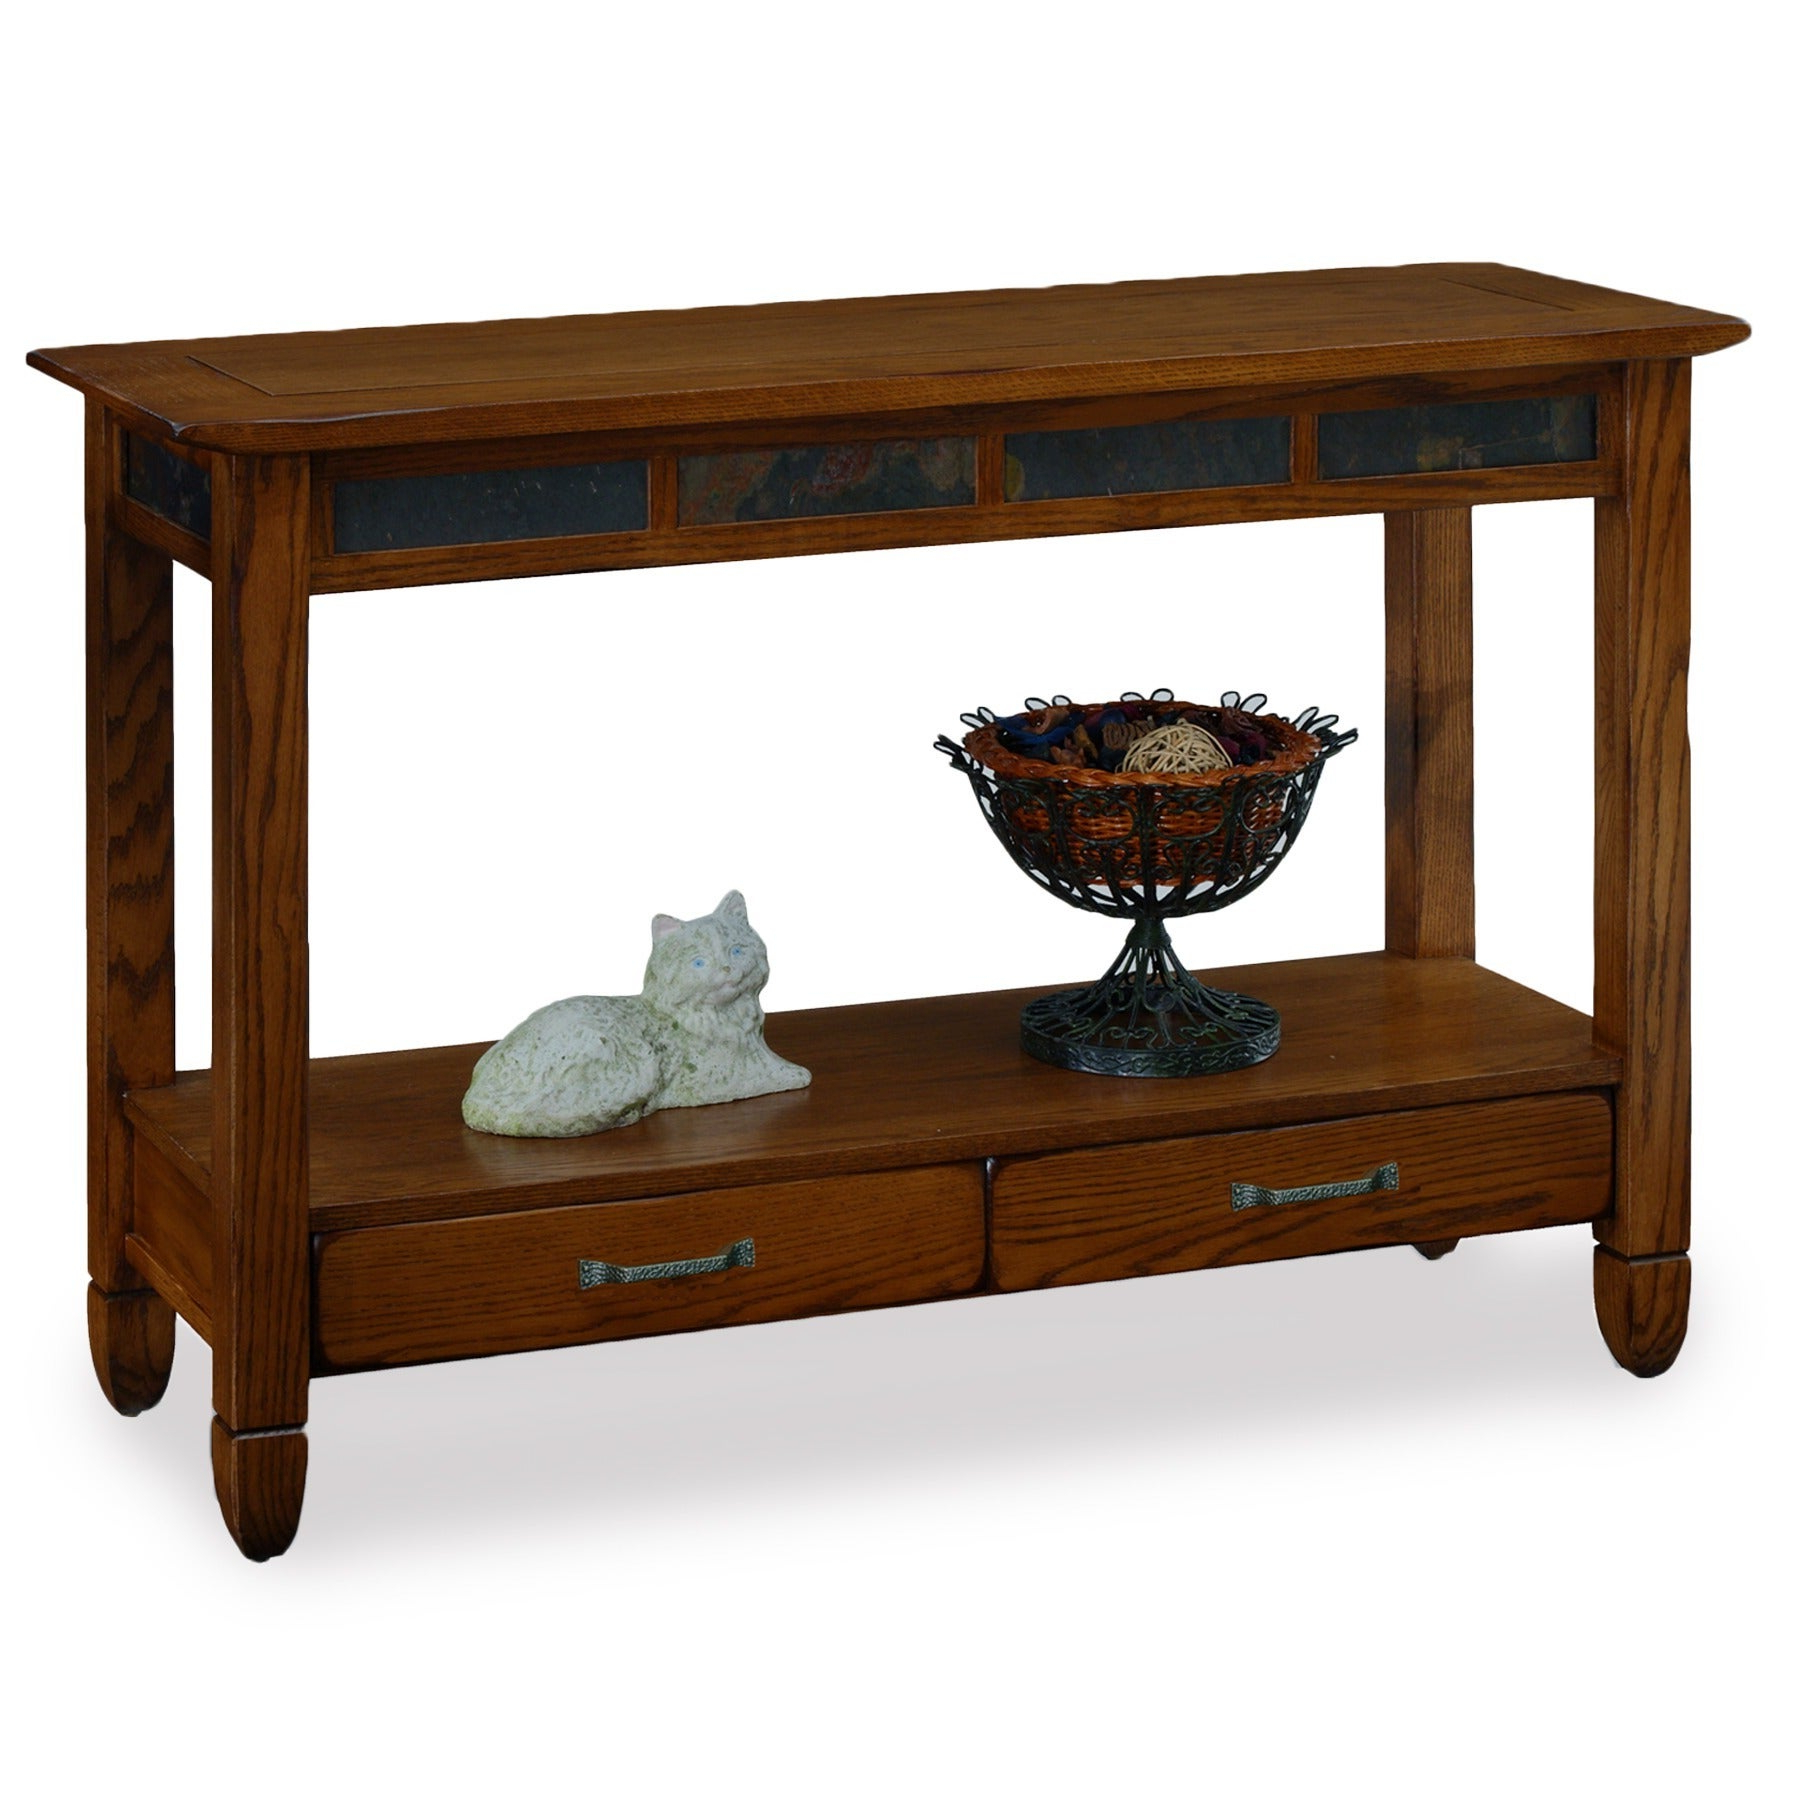 Rustic Oak And Slate Tile Sofa Table Within Well Liked Copper Grove Ixia Rustic Oak And Slate Tile Coffee Tables (View 8 of 20)